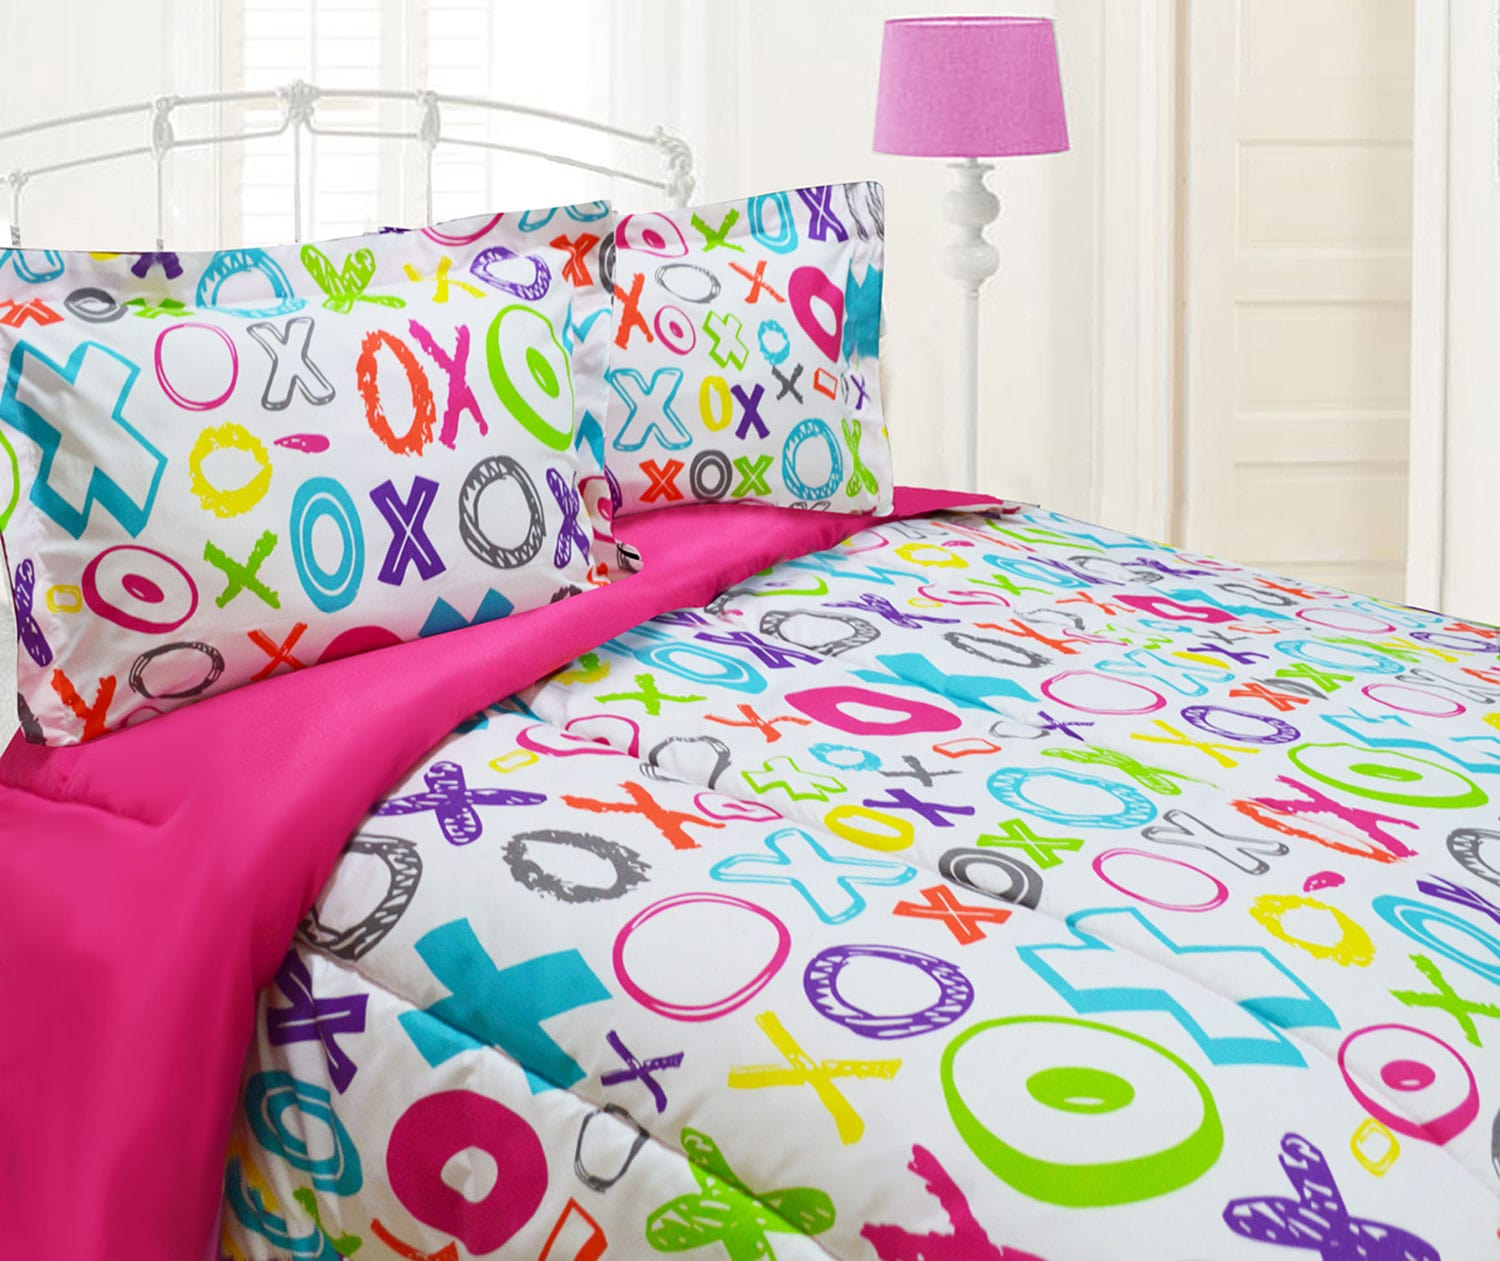 Mattresses and Bedding - XOXO 3-Piece Full Comforter Set